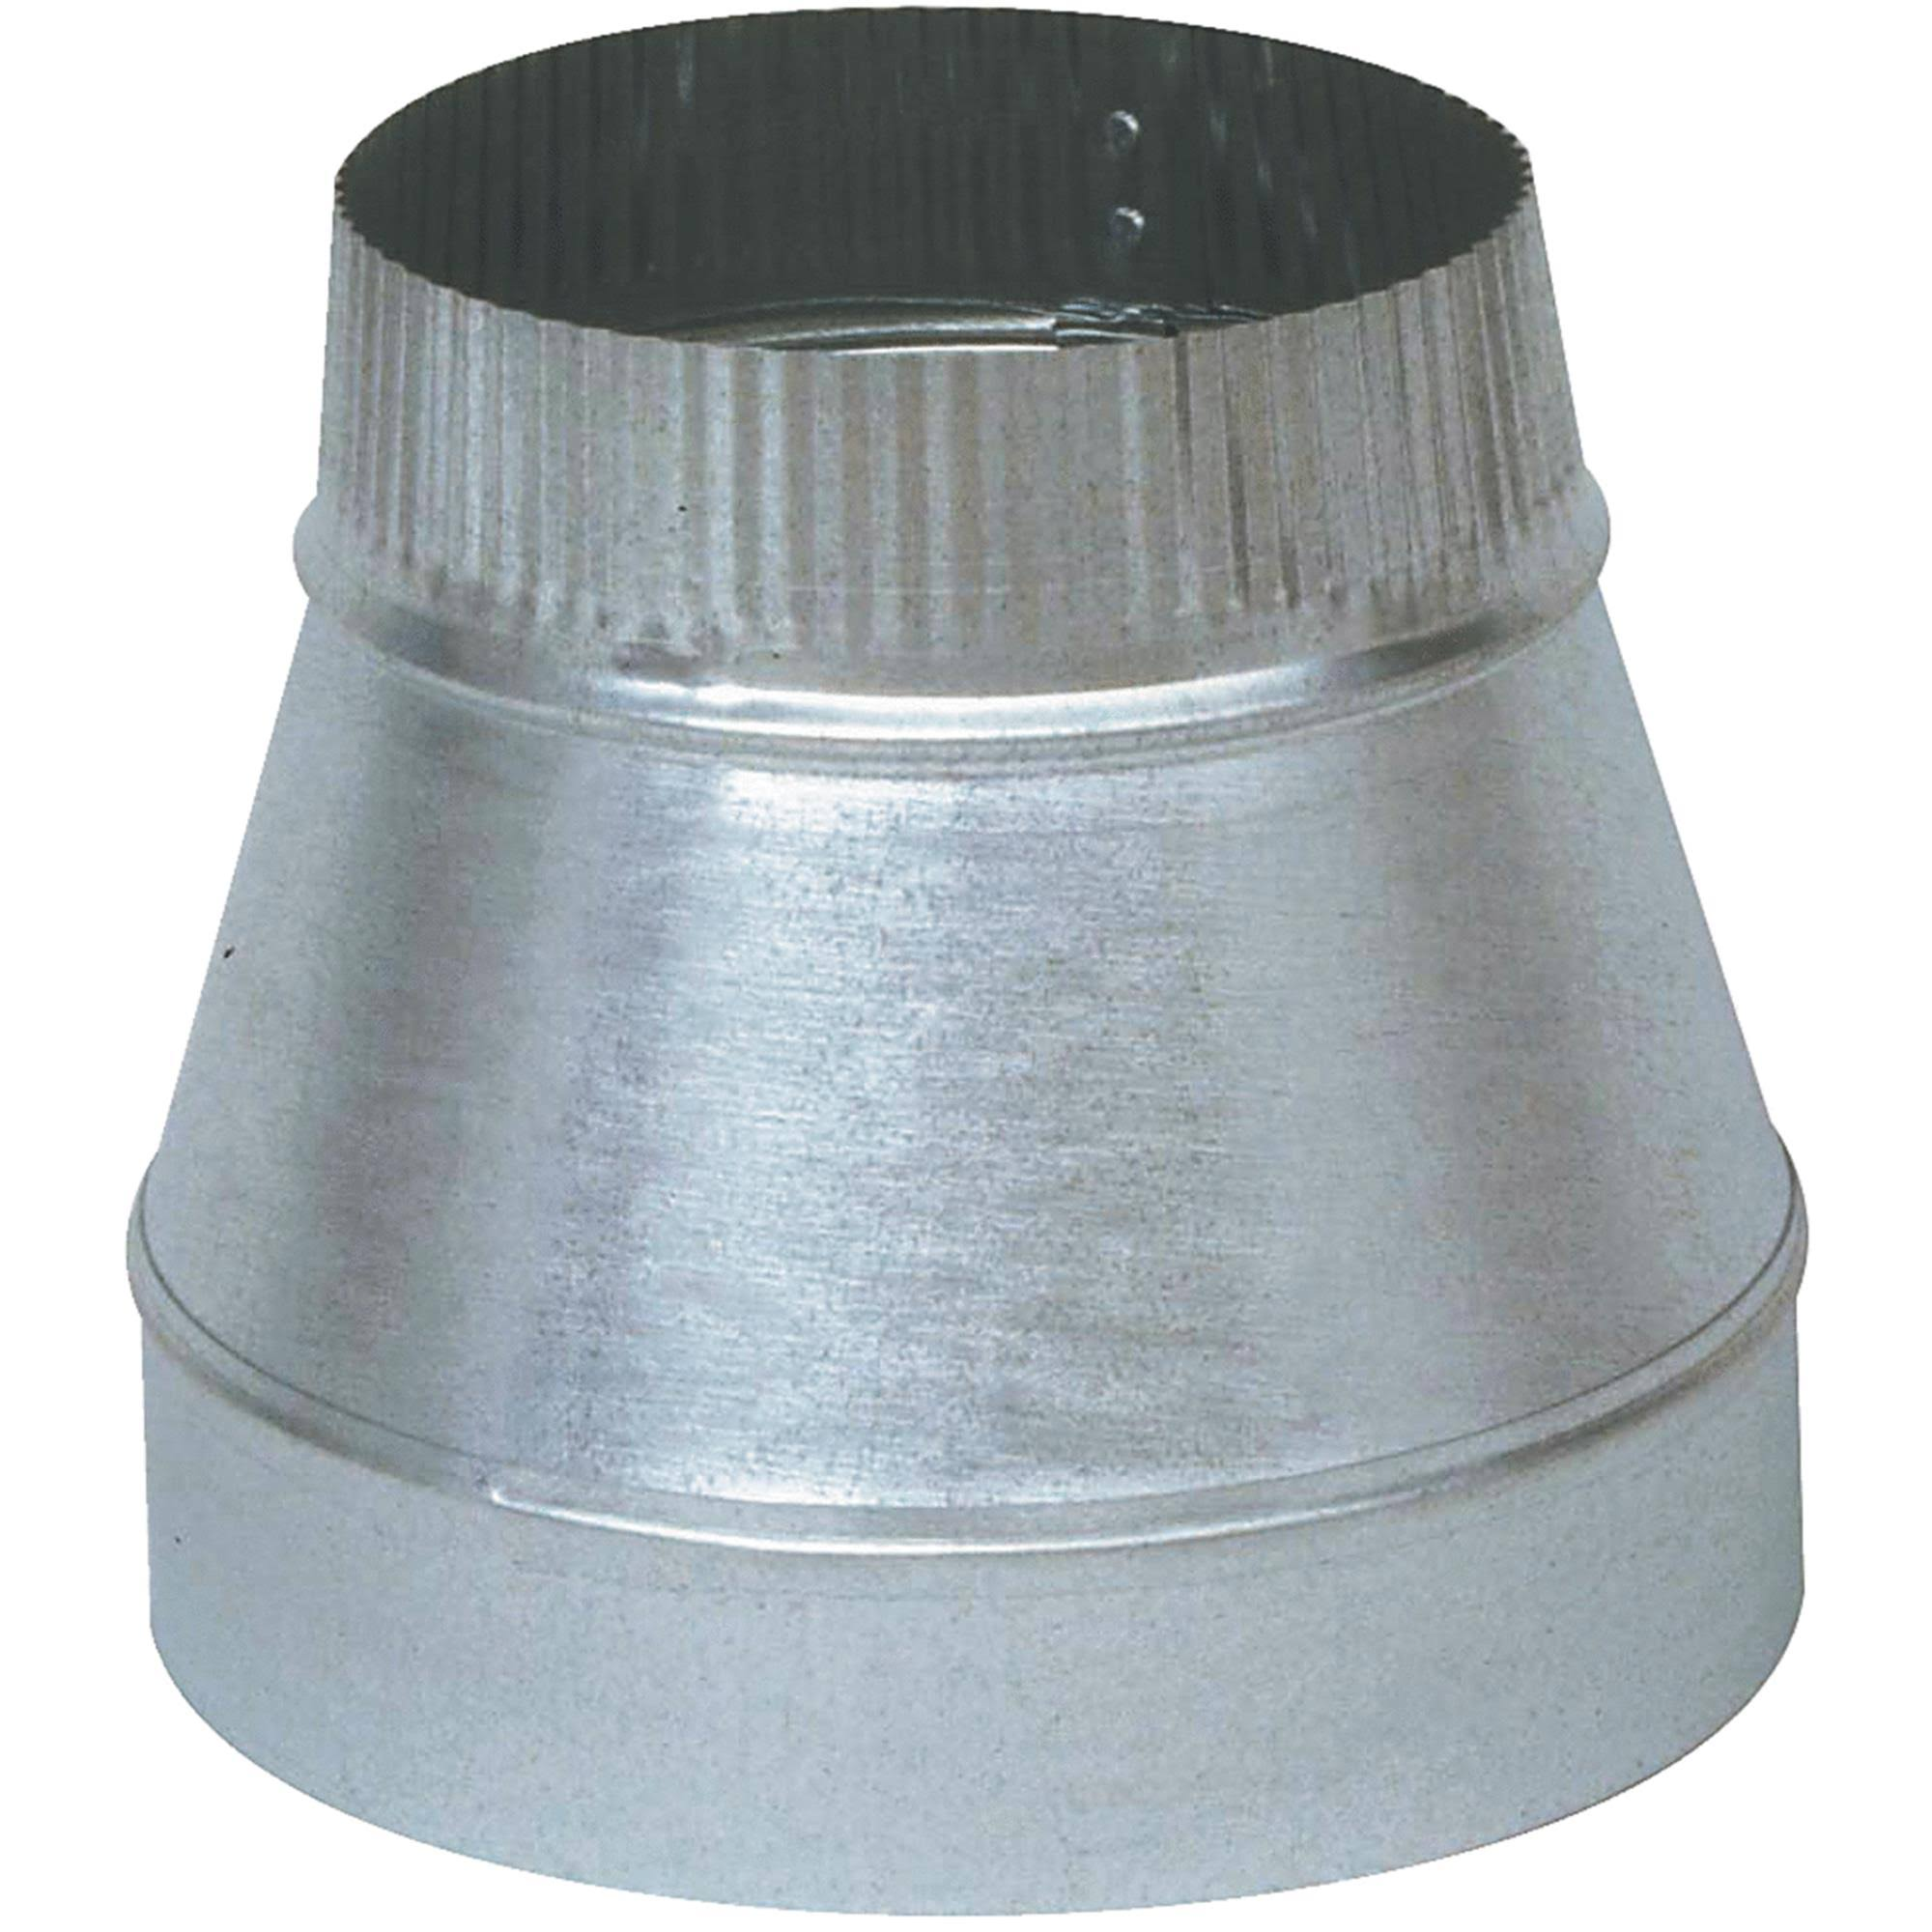 Imperial Mfg Group GV1415 Galvanized Reducer - 24 Gauge